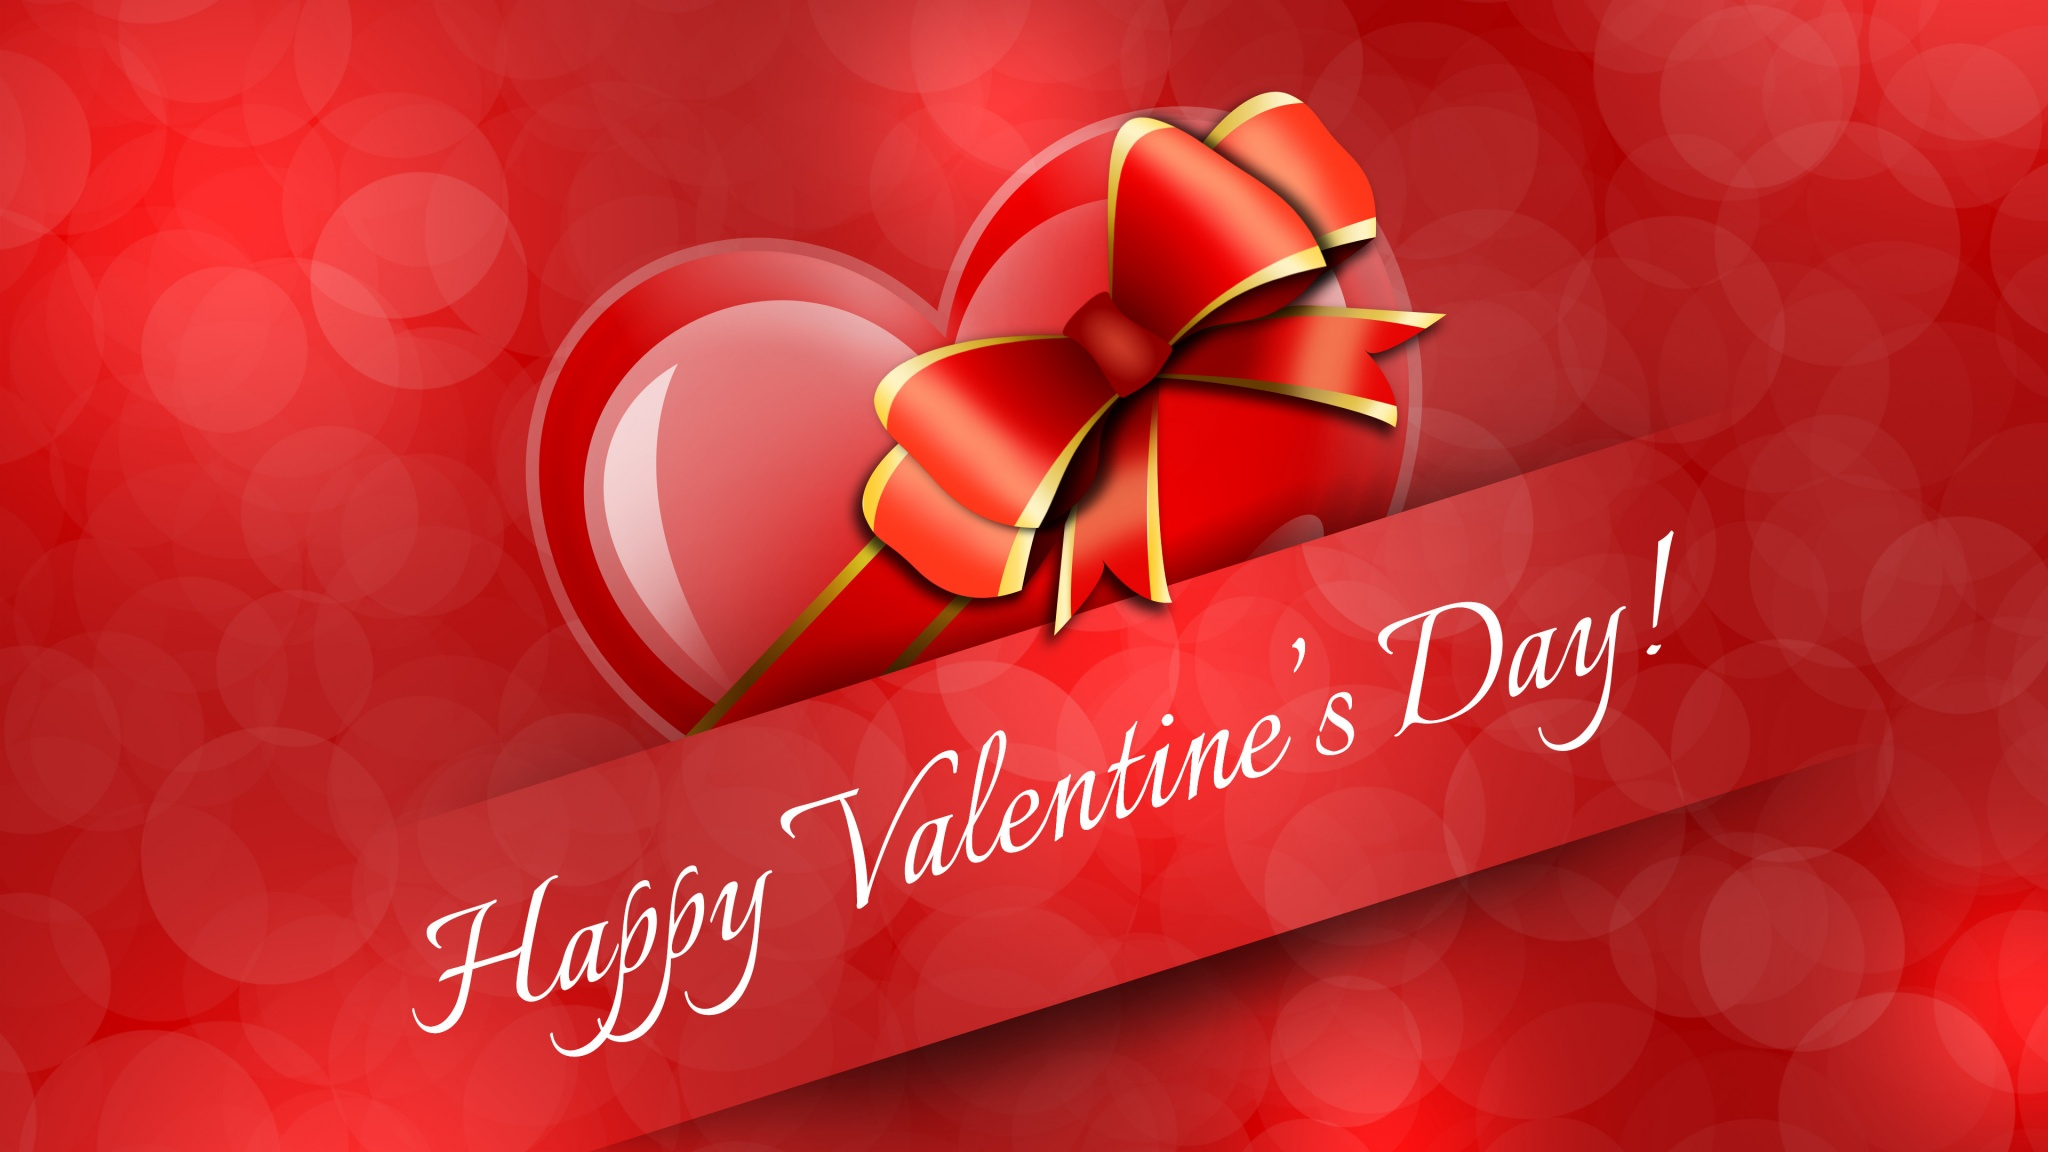 Happy Valentines Day 2015 | 2048 x 1152 | Download | Close: www.bhmpics.com/view-happy_valentines_day_2015-2048x1152.html